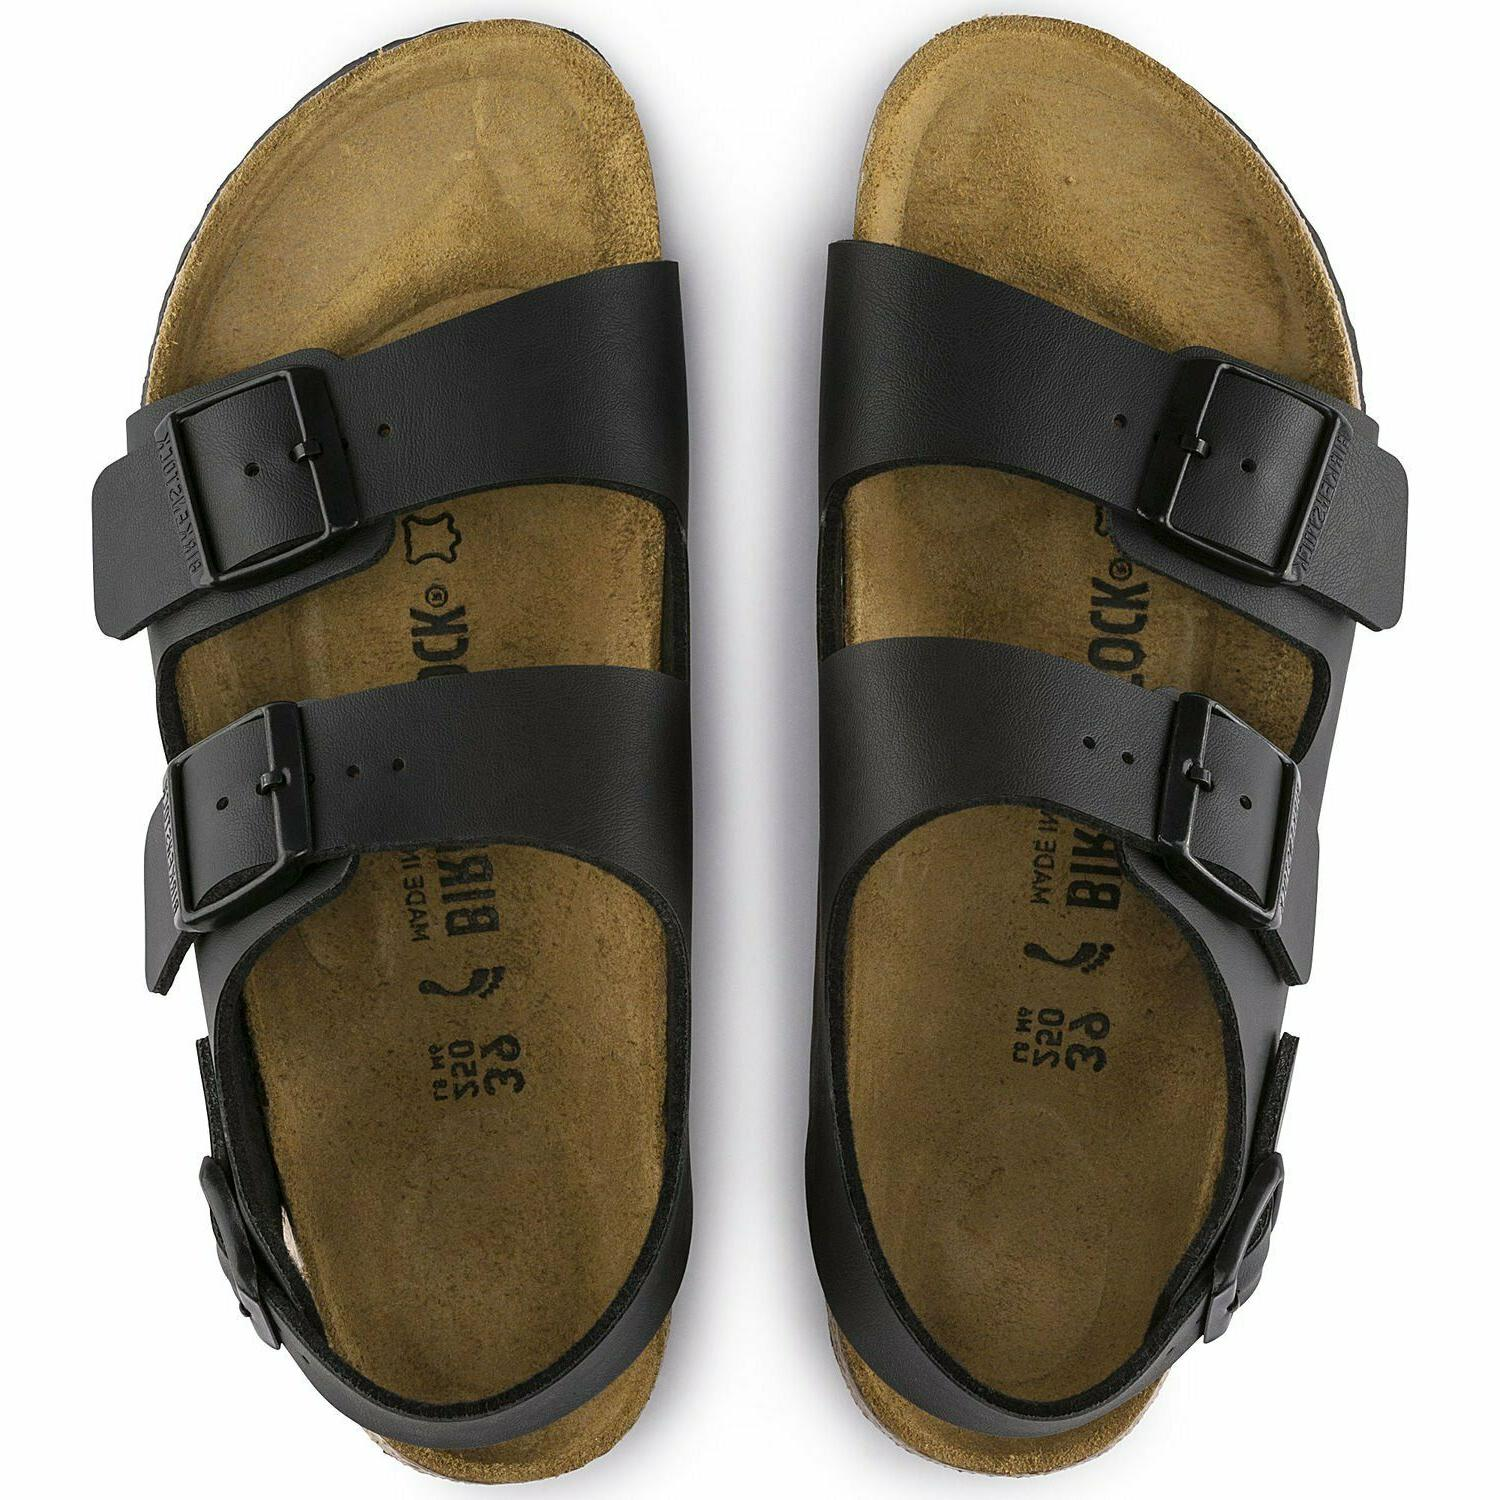 Birkenstock Sandals Strap Slingback Shoes Slides